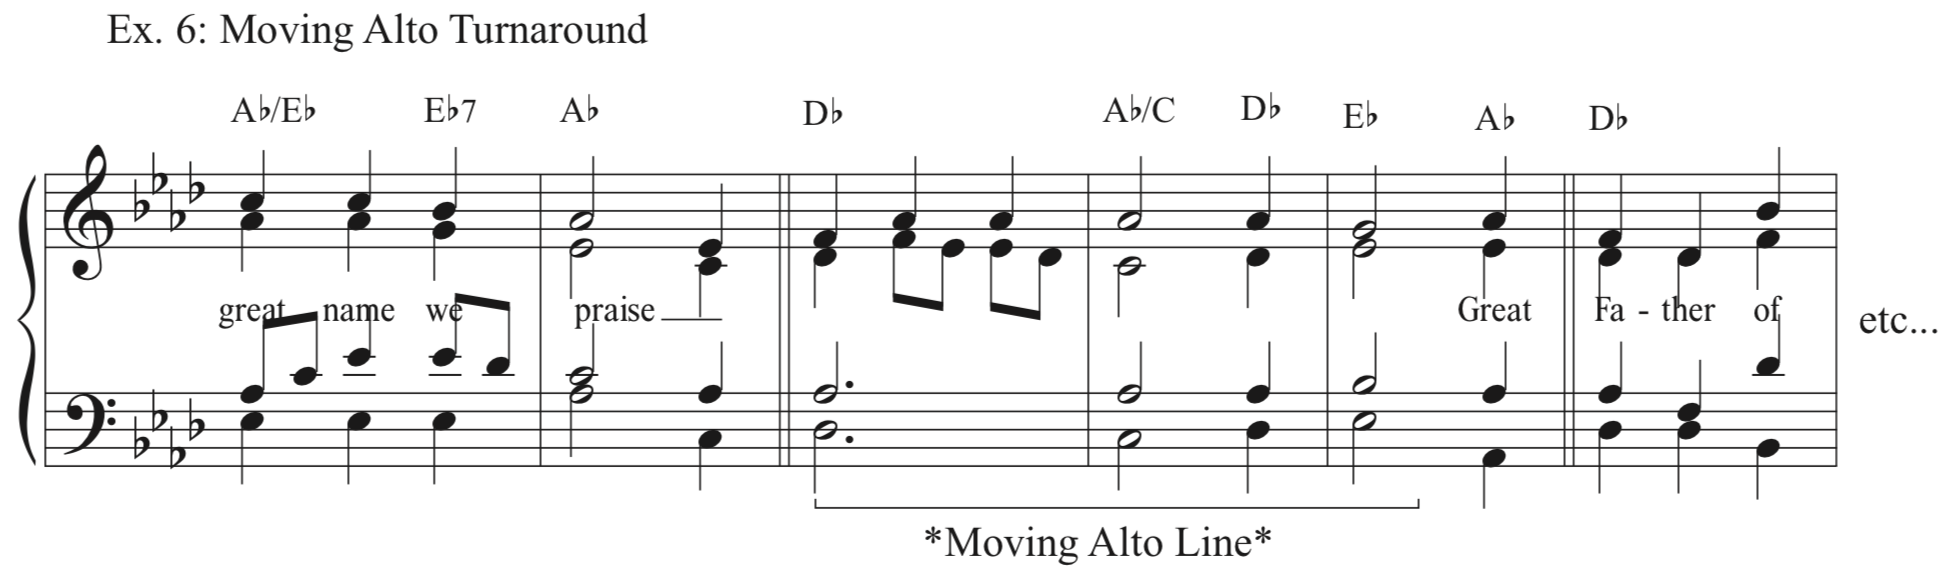 Ex. 6 - Moving Alto Turnaround - Because the alto voice needs a little love, too.